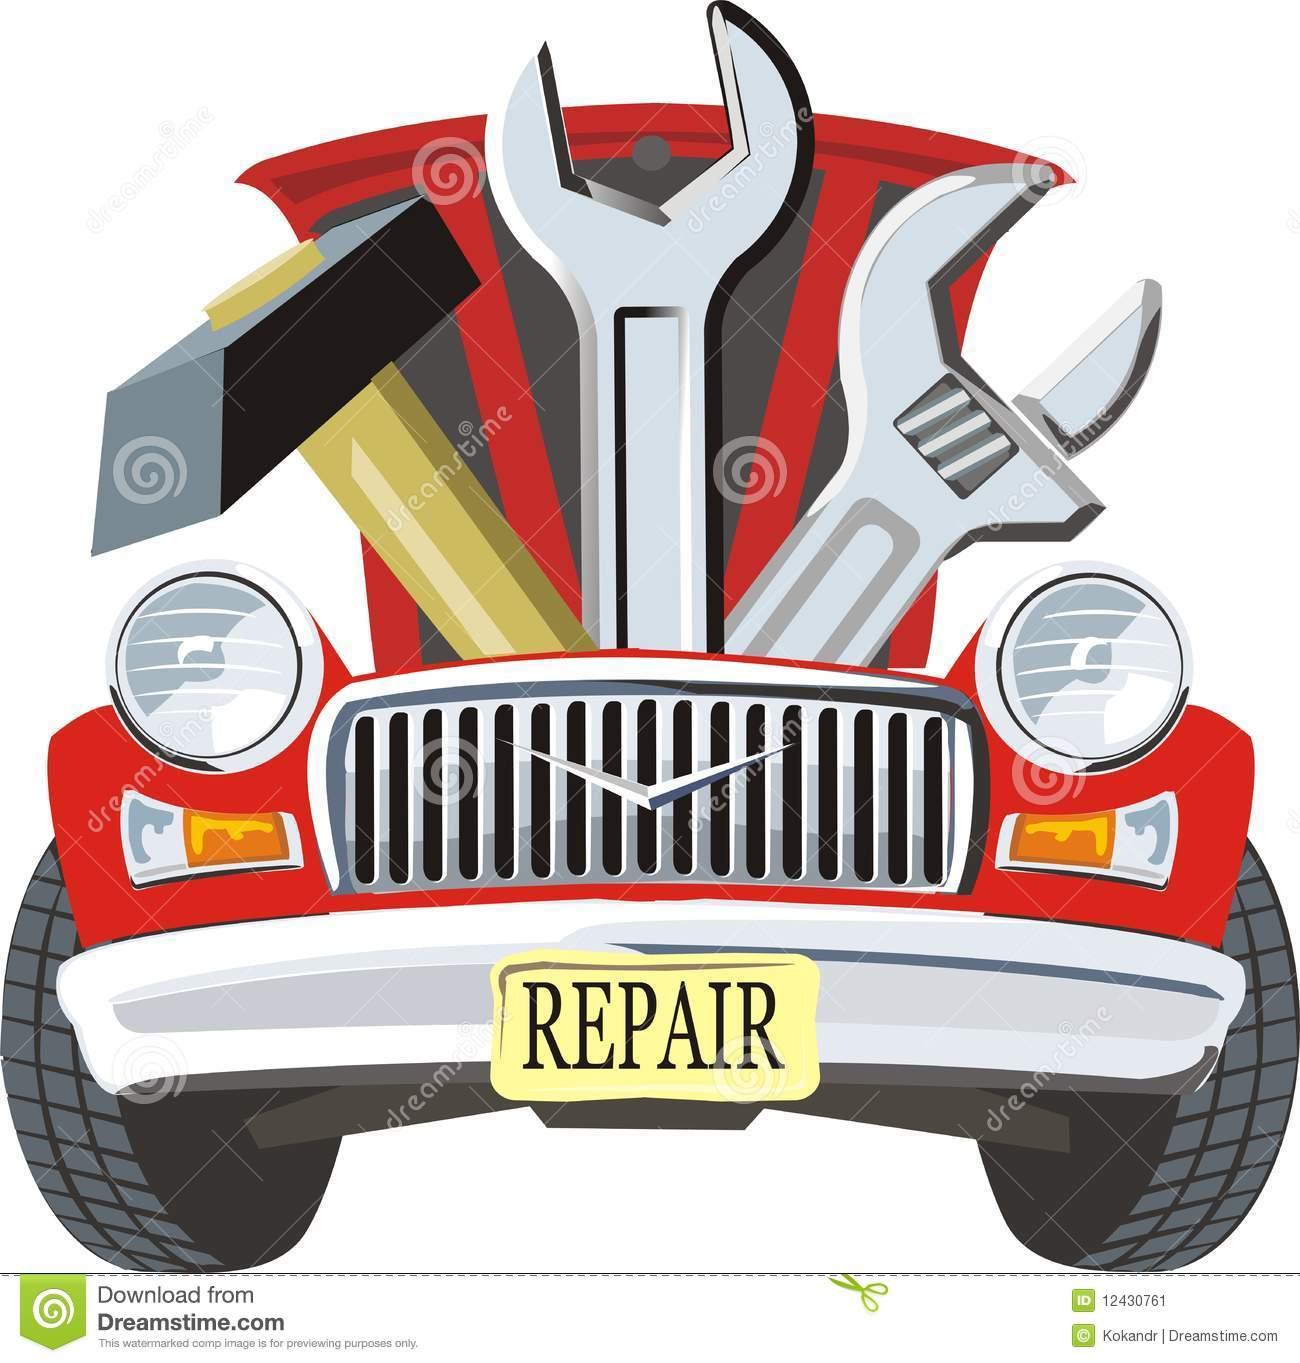 Mechanic images free download. Clipart cars tool